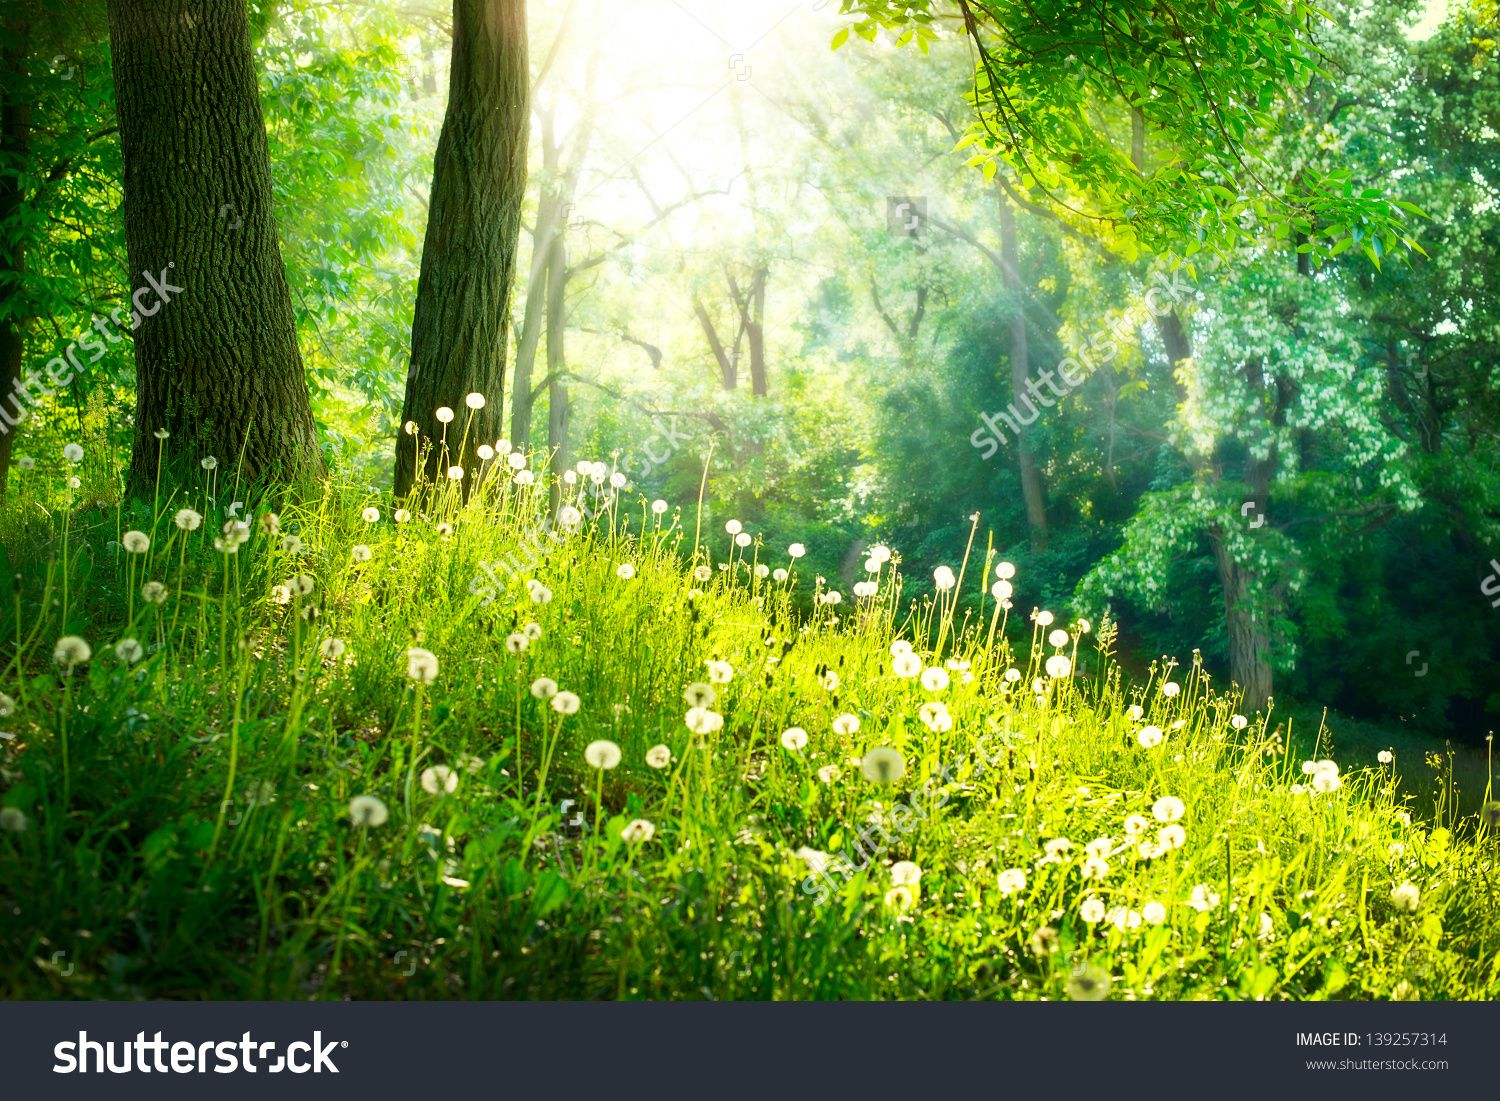 Spring Nature Backgrounds Photo About Green Grass And Trees